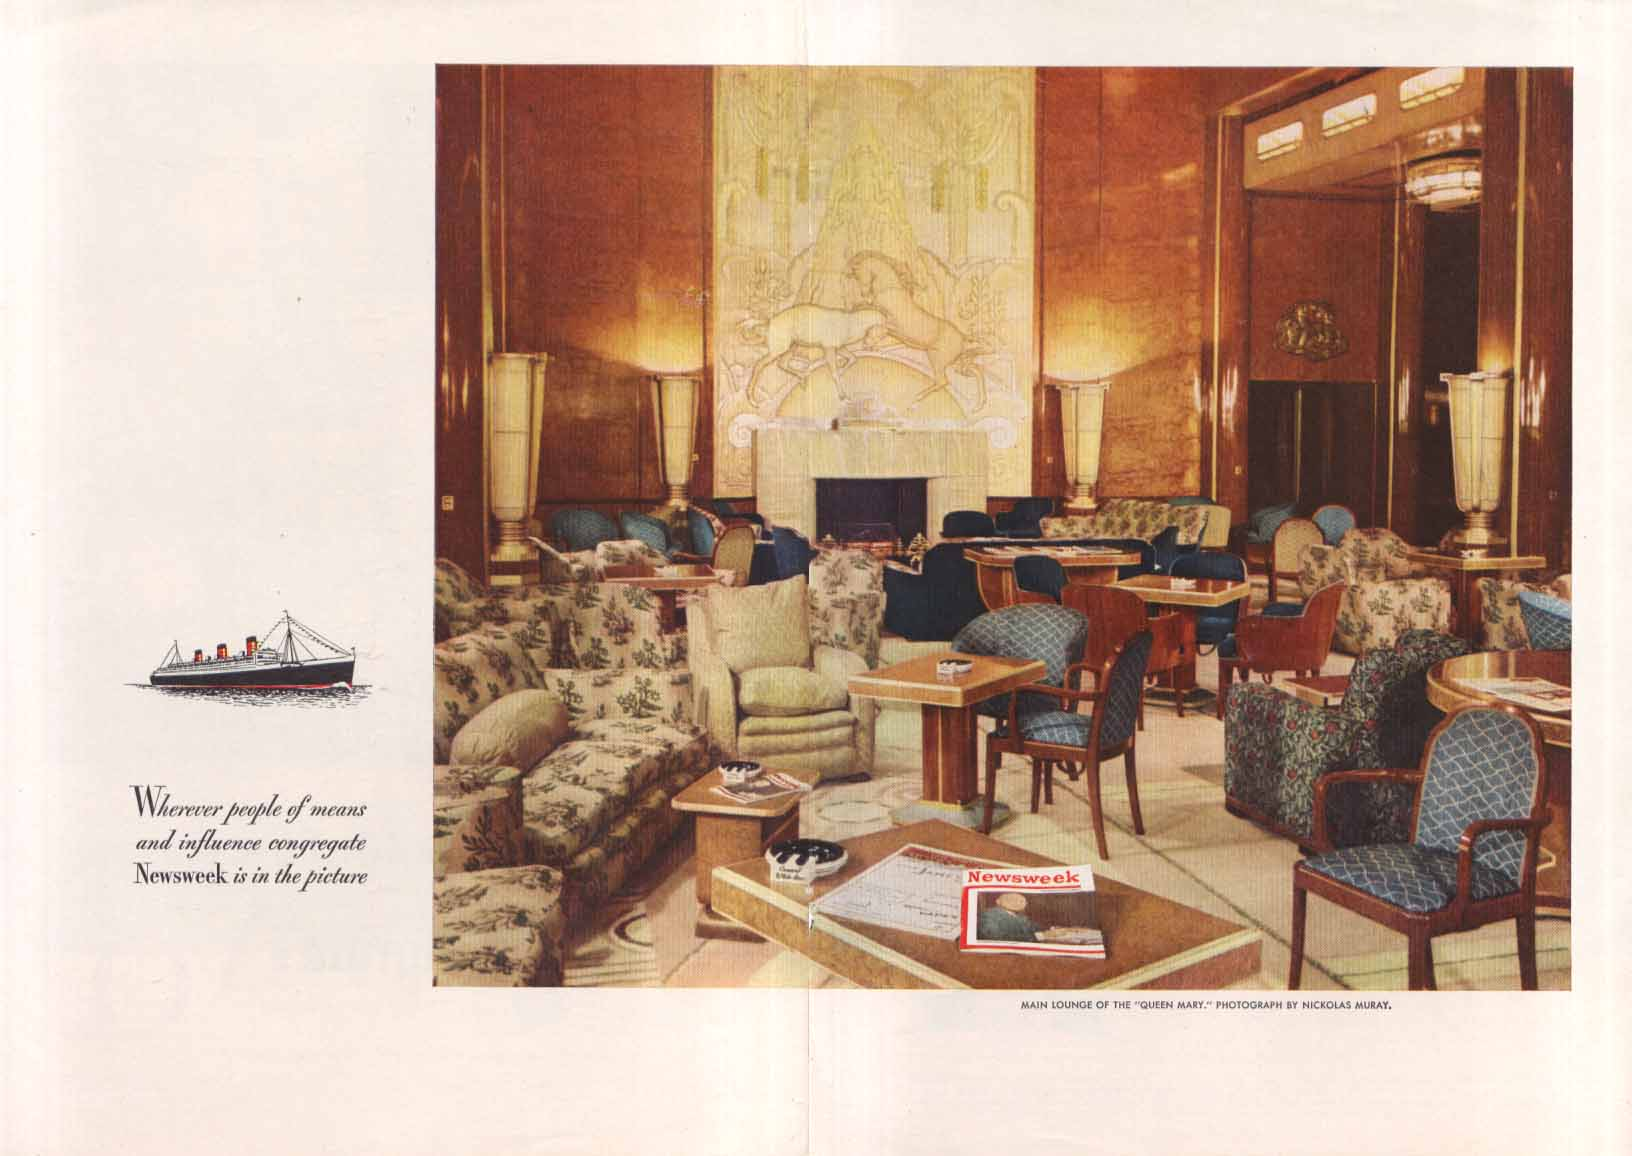 Image for Newsweek on Cunard R M S Queen Mary ad 1947 Muray